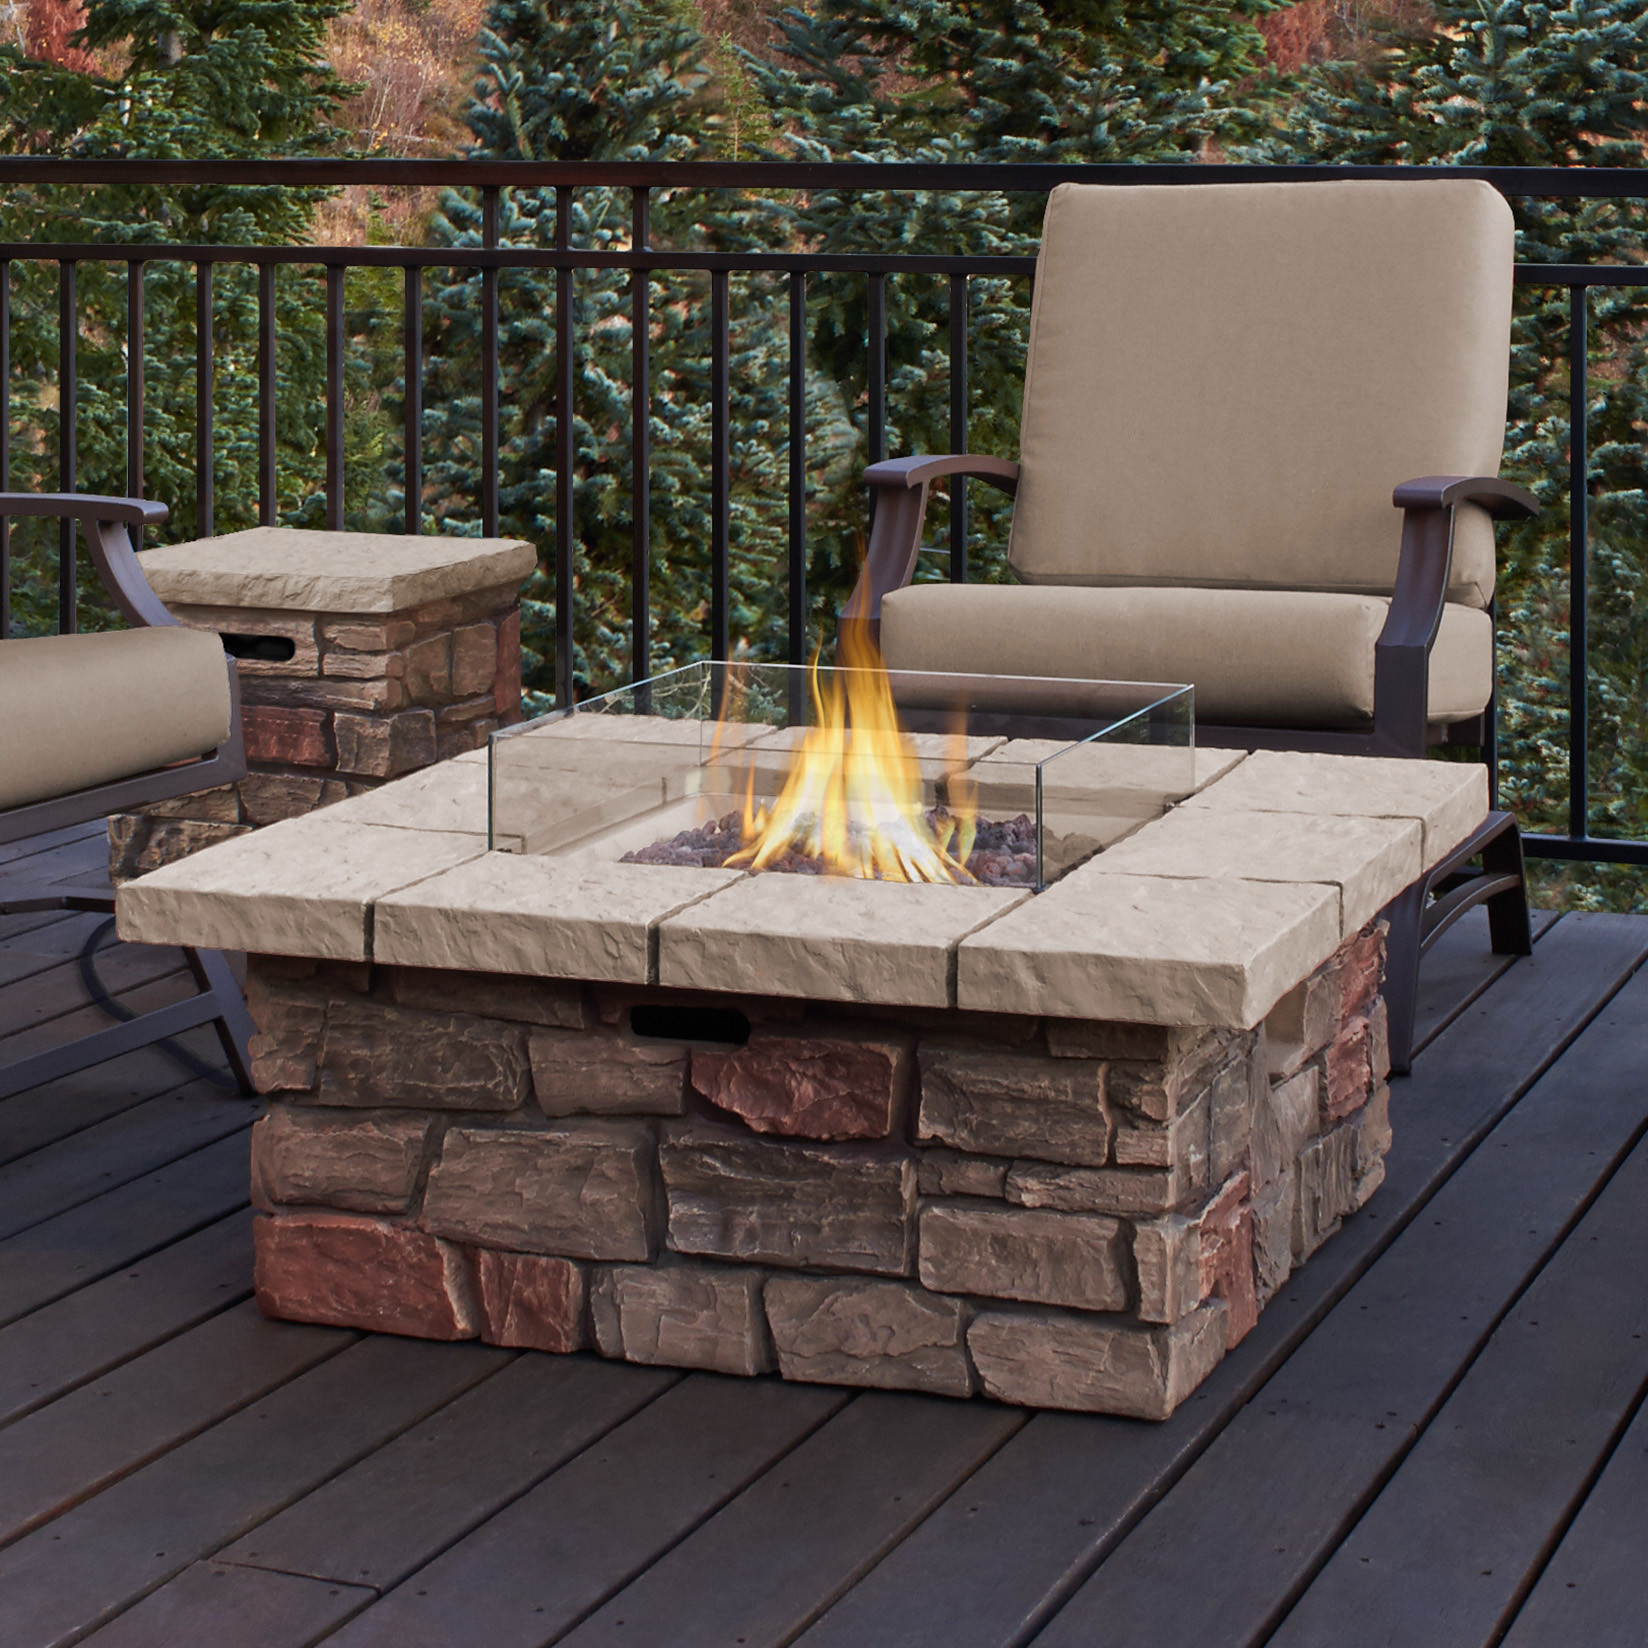 Discover the best top 15 types of propane patio fire pits with table space for outdoor dining and beverages. These are awesome for your outdoor space.